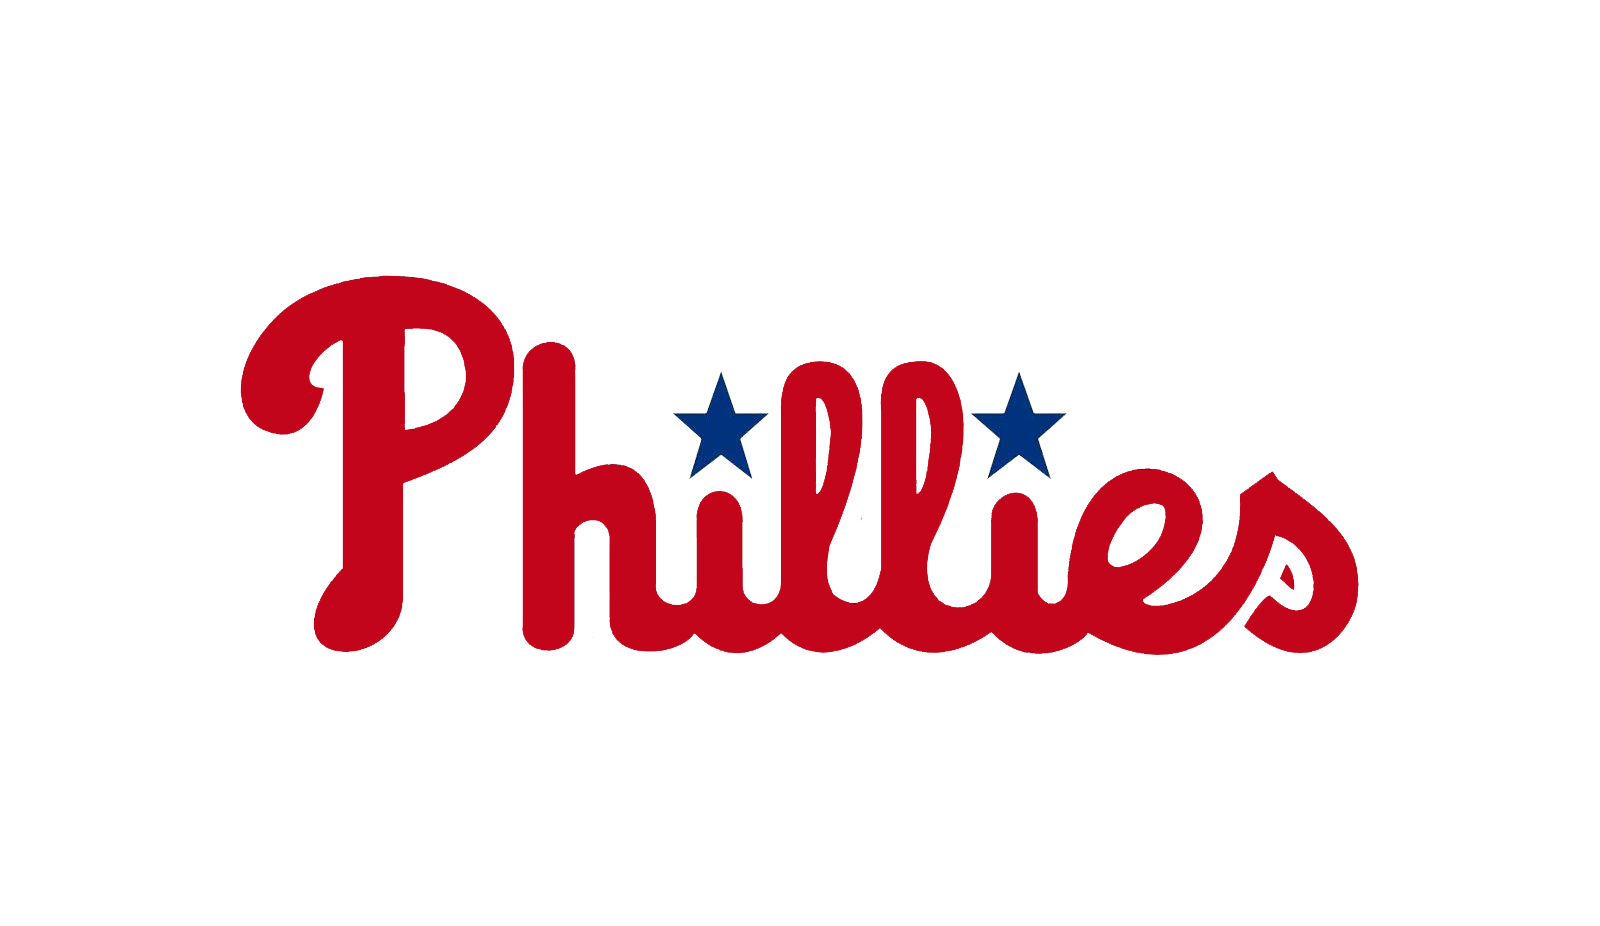 Phillies Logo Images.